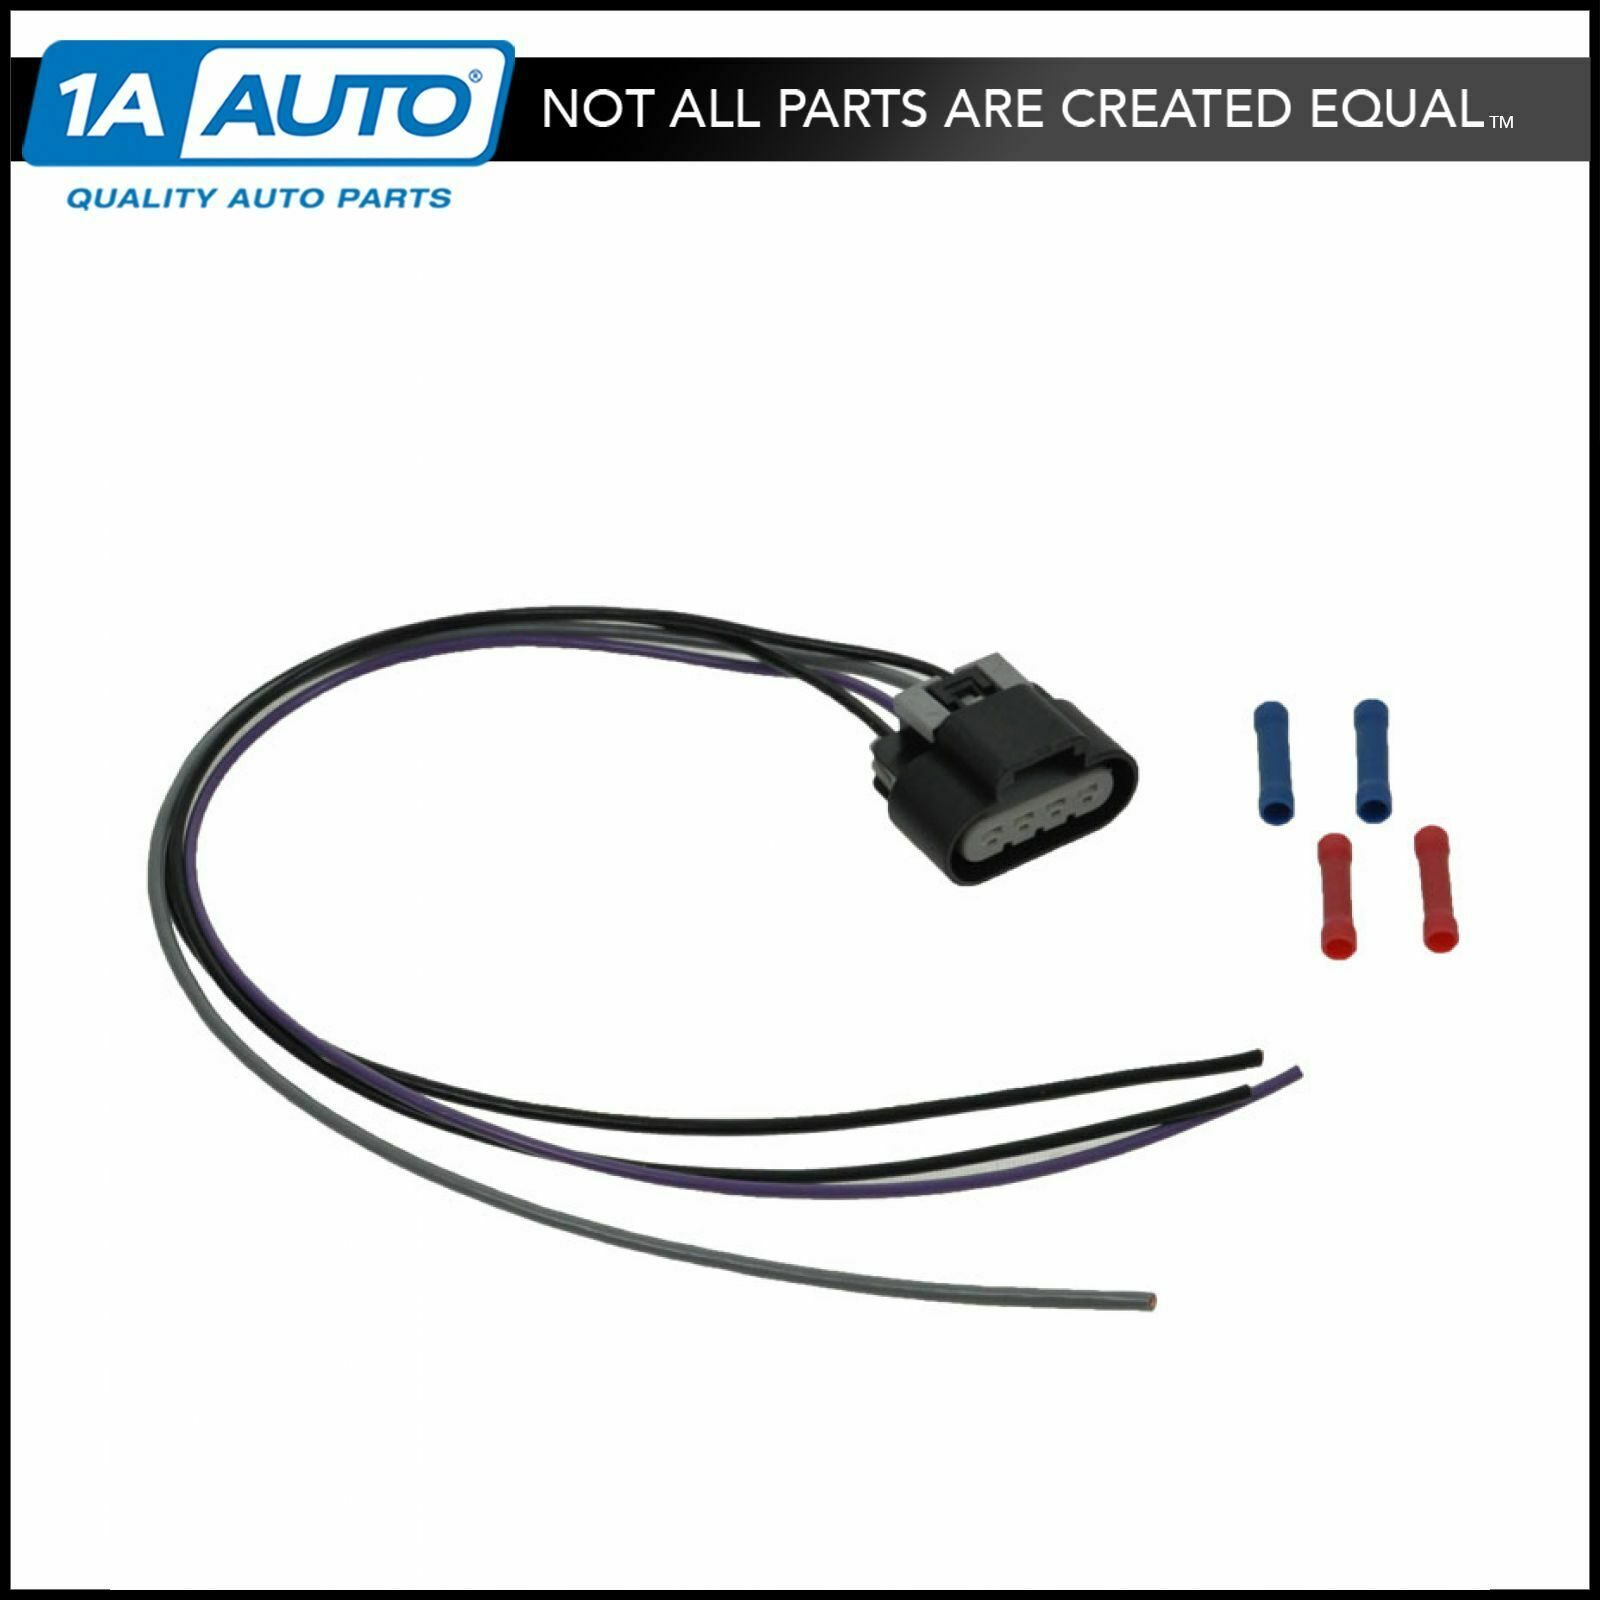 Fuel Pump Wiring Harness With Oval Connector 4 Wire Pigtail For Gm 2001 Cadillac Eldorado 1 Of 2only 3 Available